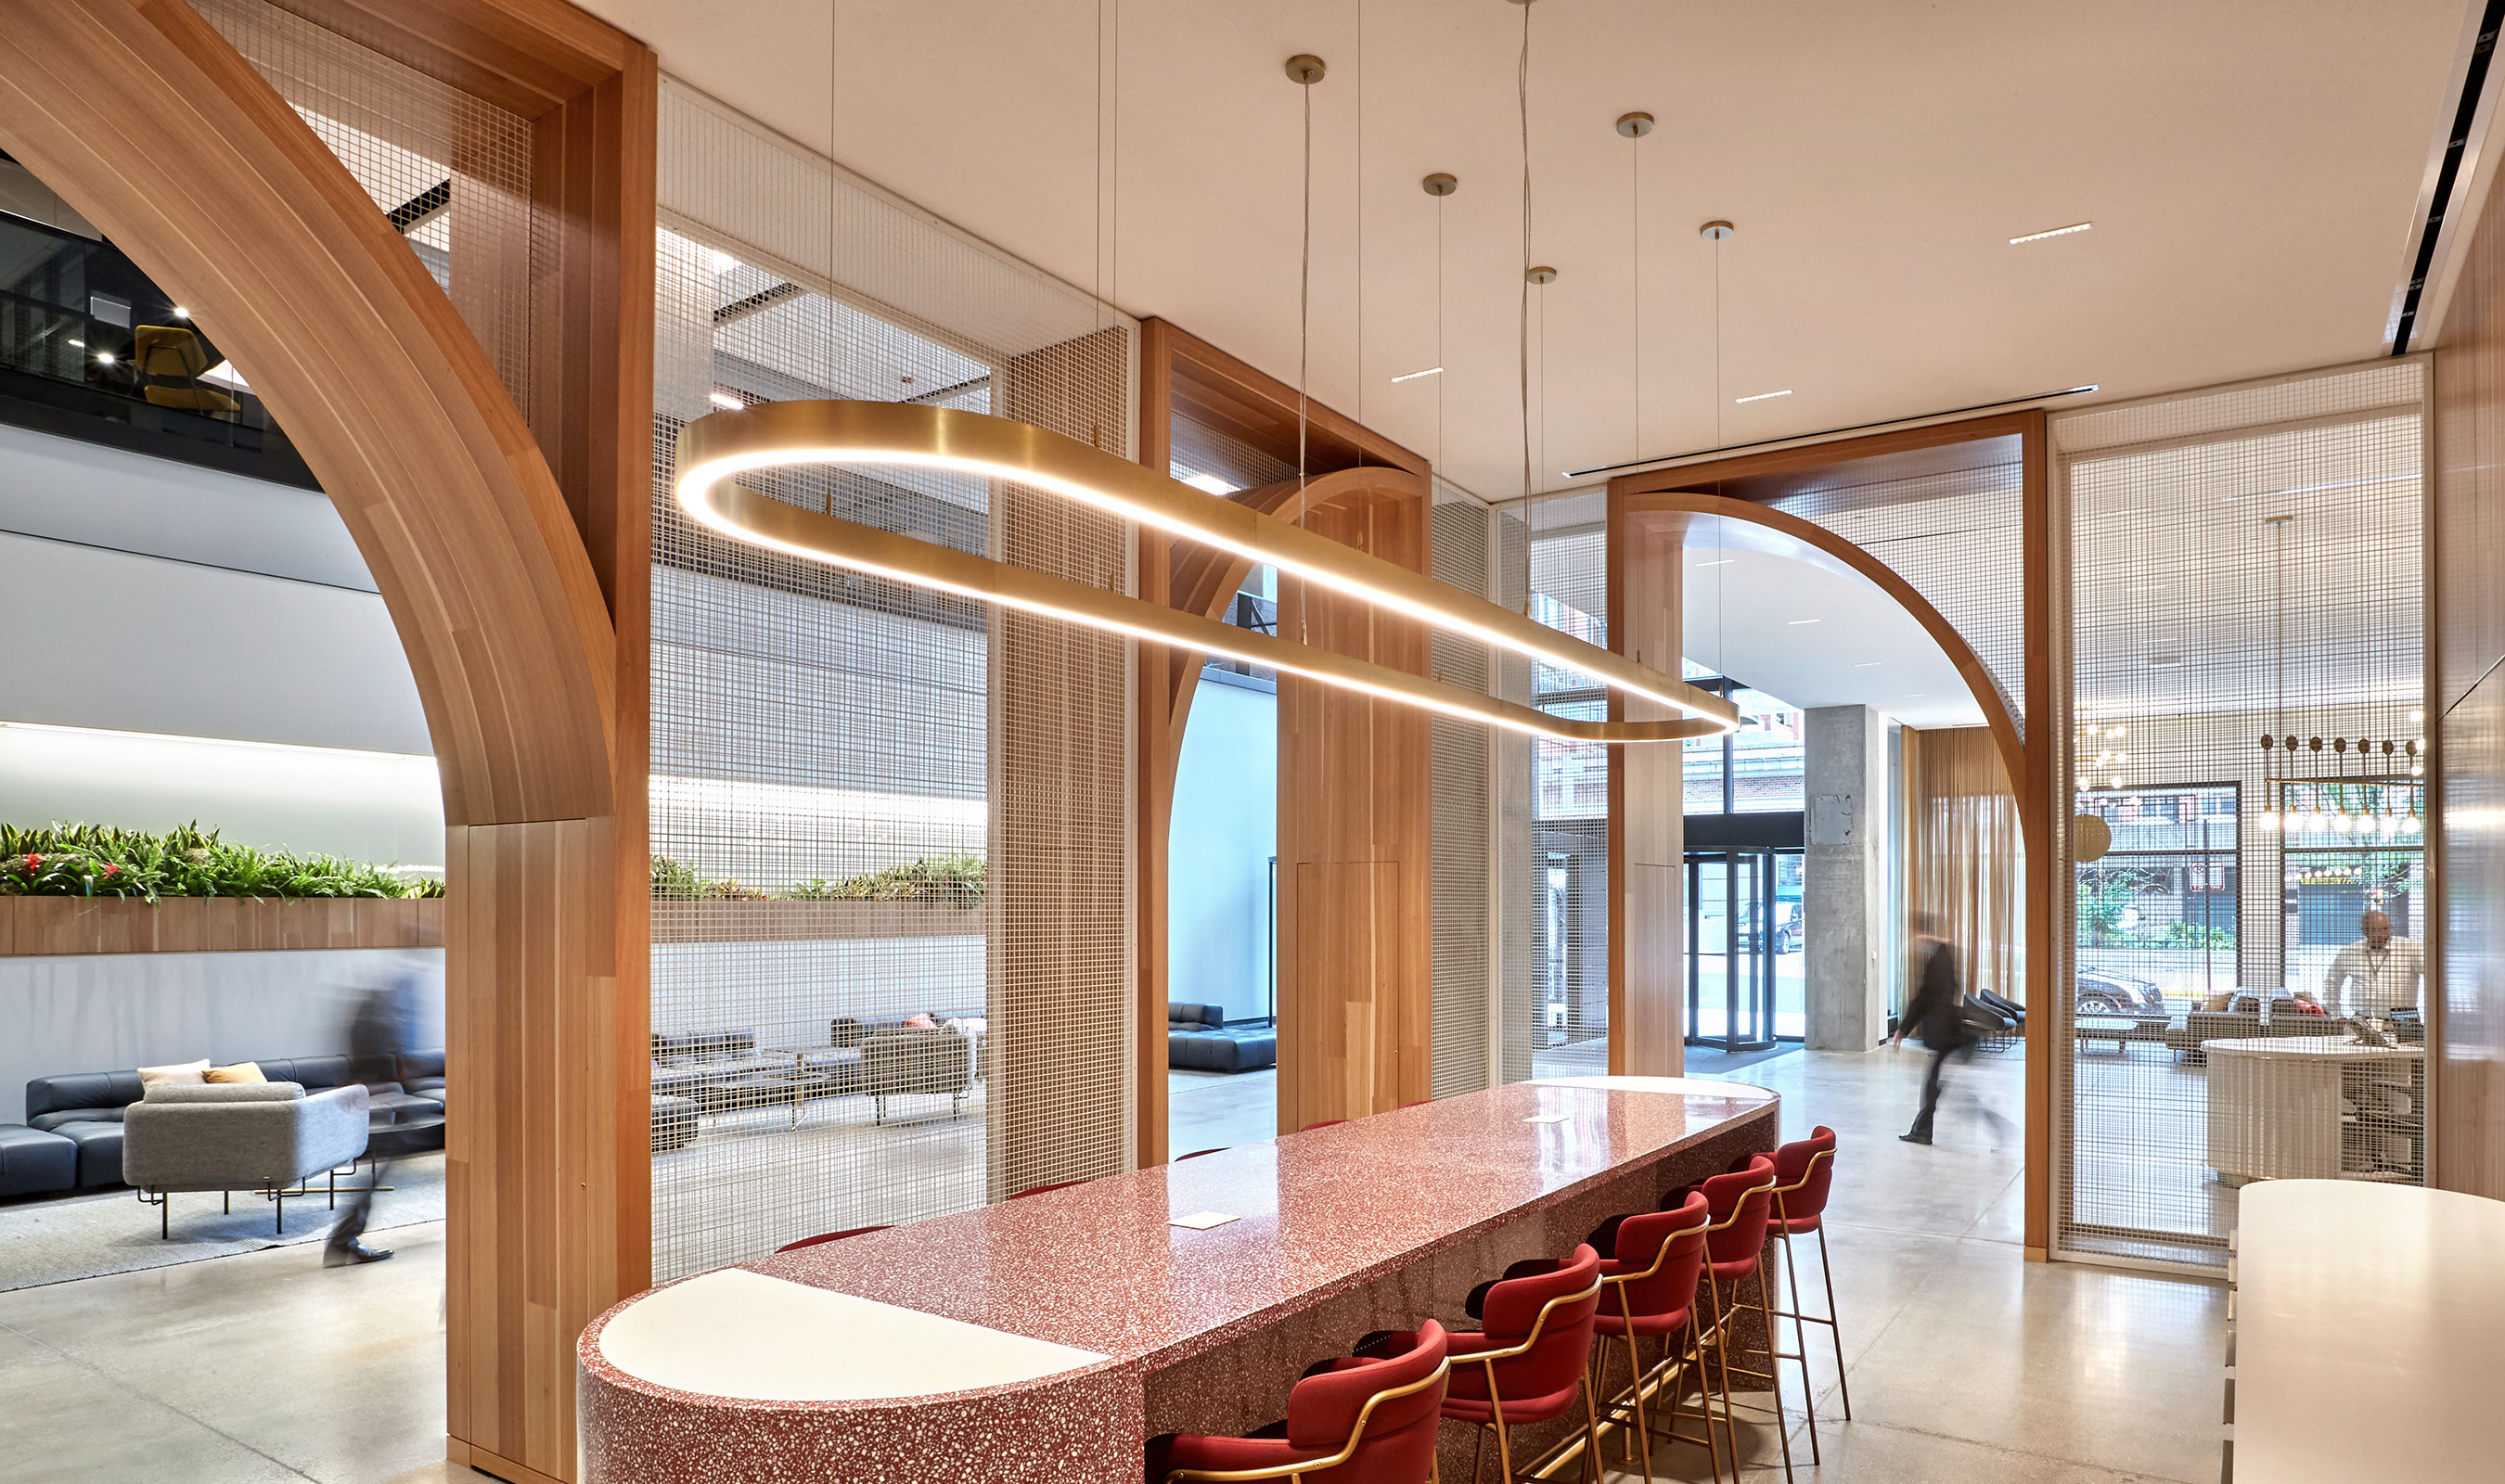 The large percent open area of wire mesh pattern L-81 gives the illusion of separated spaces while maintaining sight lines in this lobby space.